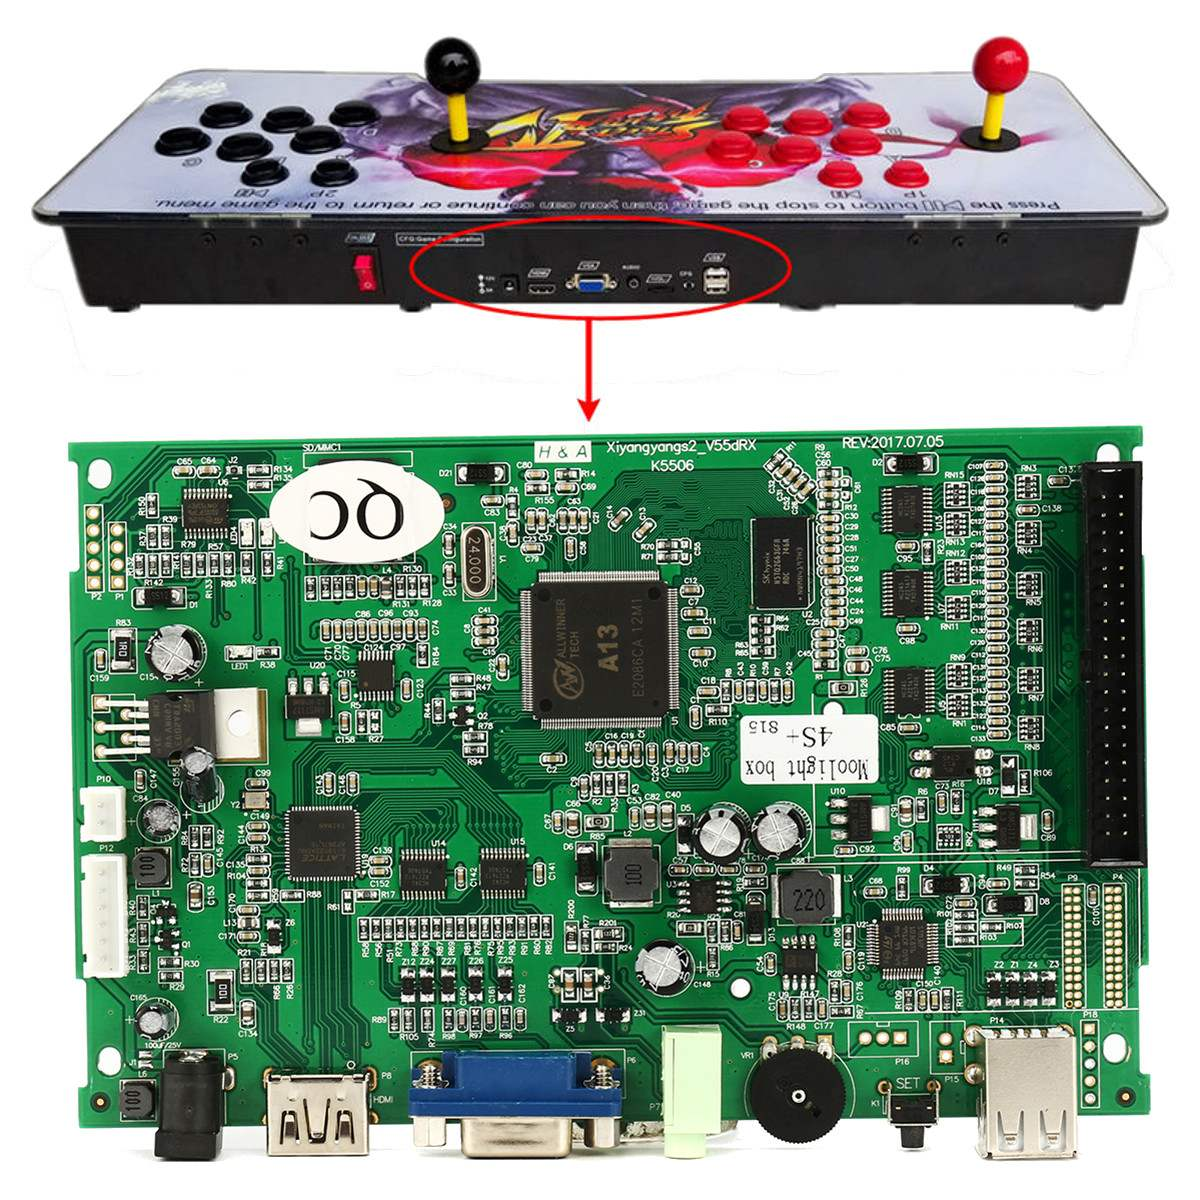 Game Box 4/5S 815/1314 In 1 MAME Jamma VGA Pandoras Cabinet Machine Motherboard Parts Console Multi Arcade PCB Board Cartridge